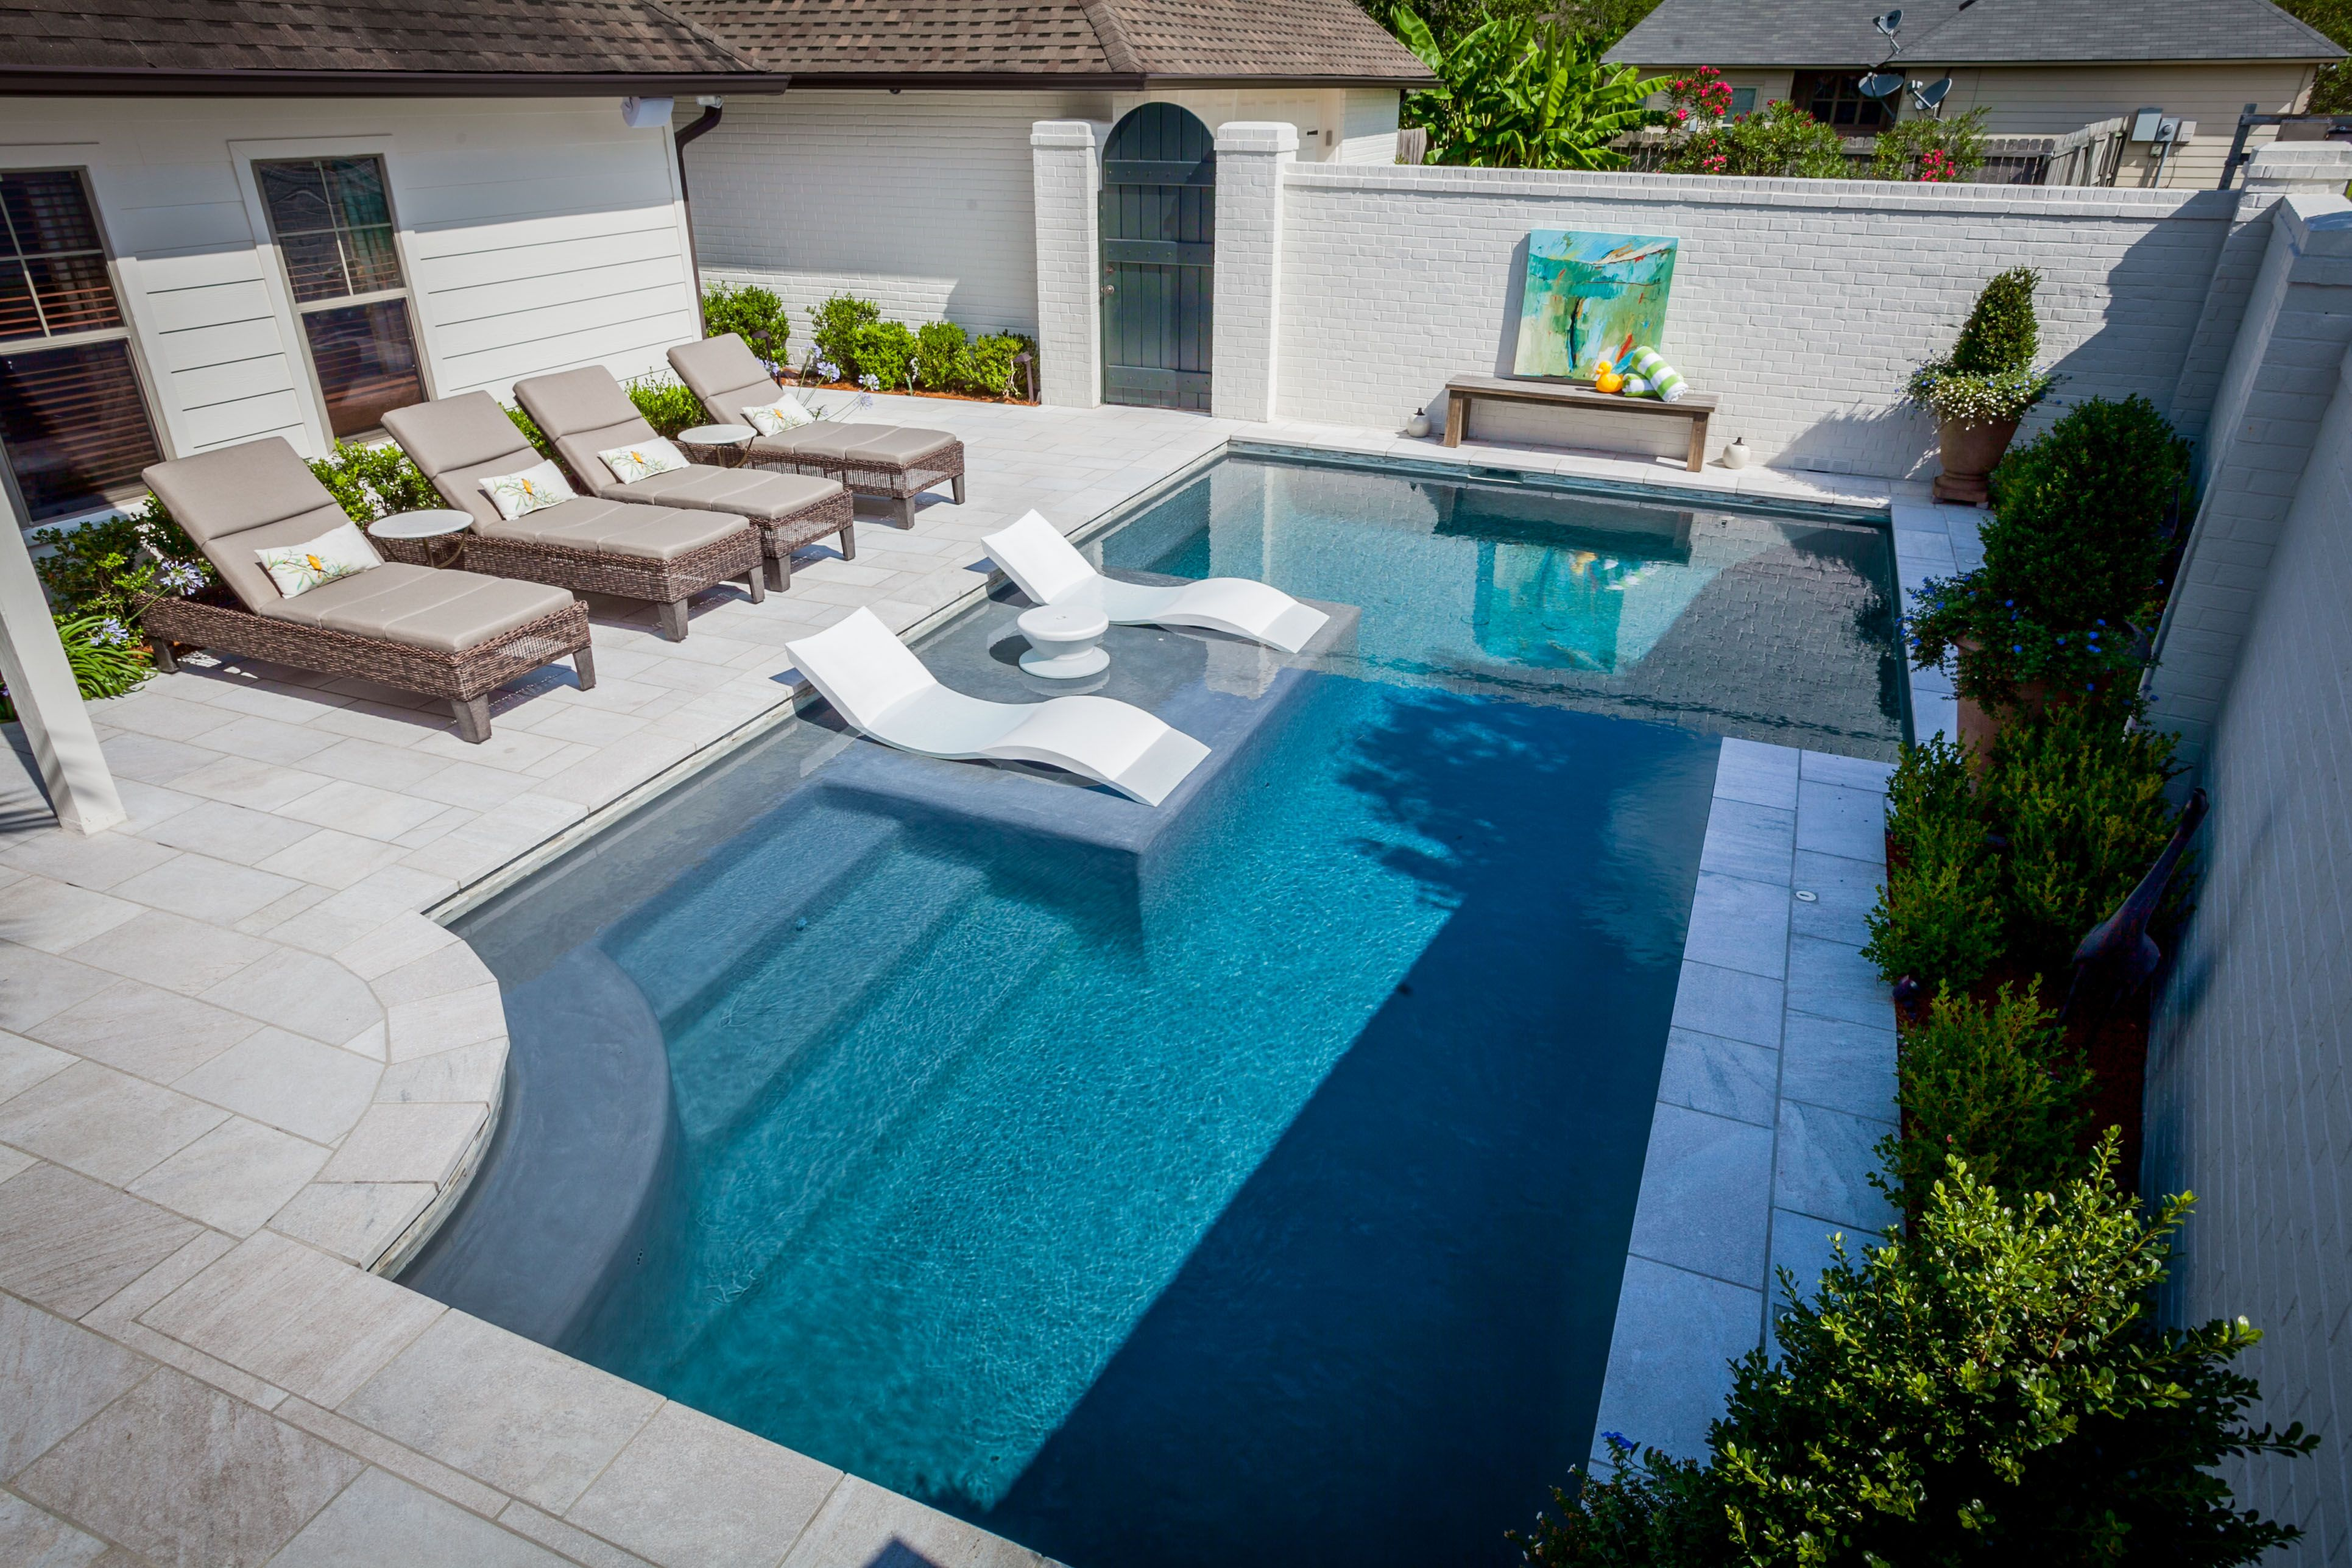 Create the perfect outdoor scene with Ledge Lounger in-pool